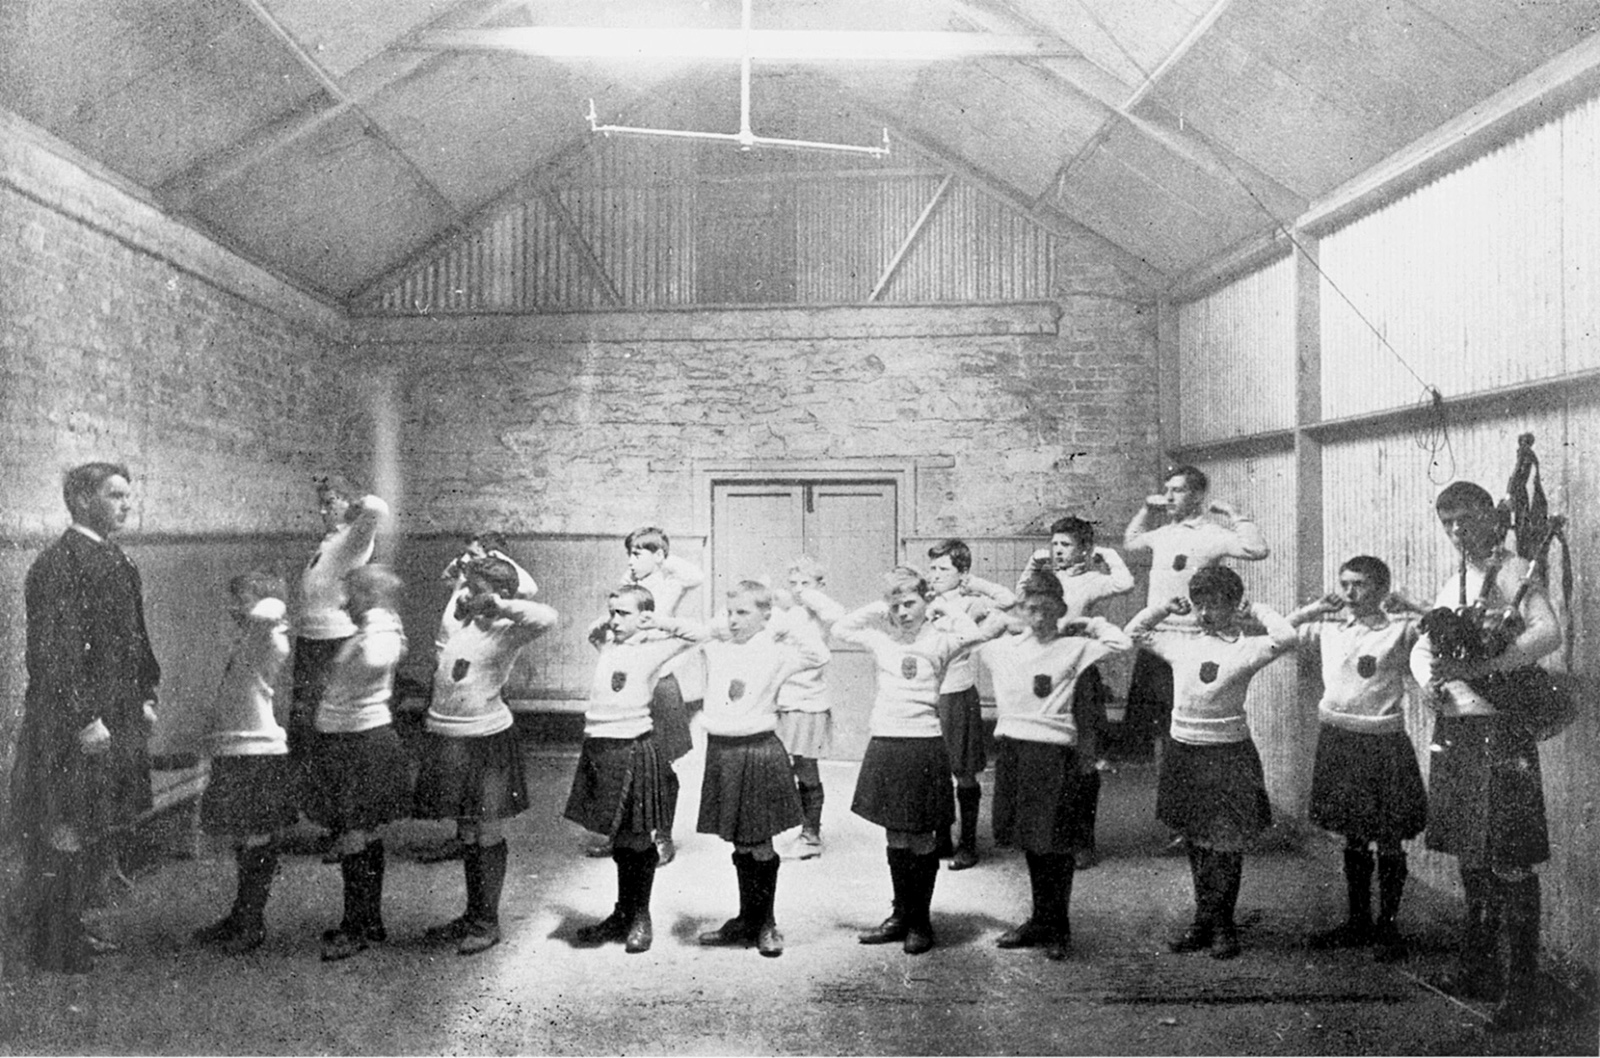 Students being drilled at St. Enda's, the school founded by Patrick Pearse, Dublin, circa 1910. The teacher leading them is probably Con Colbert, who was later executed for his part in the Easter Rising.